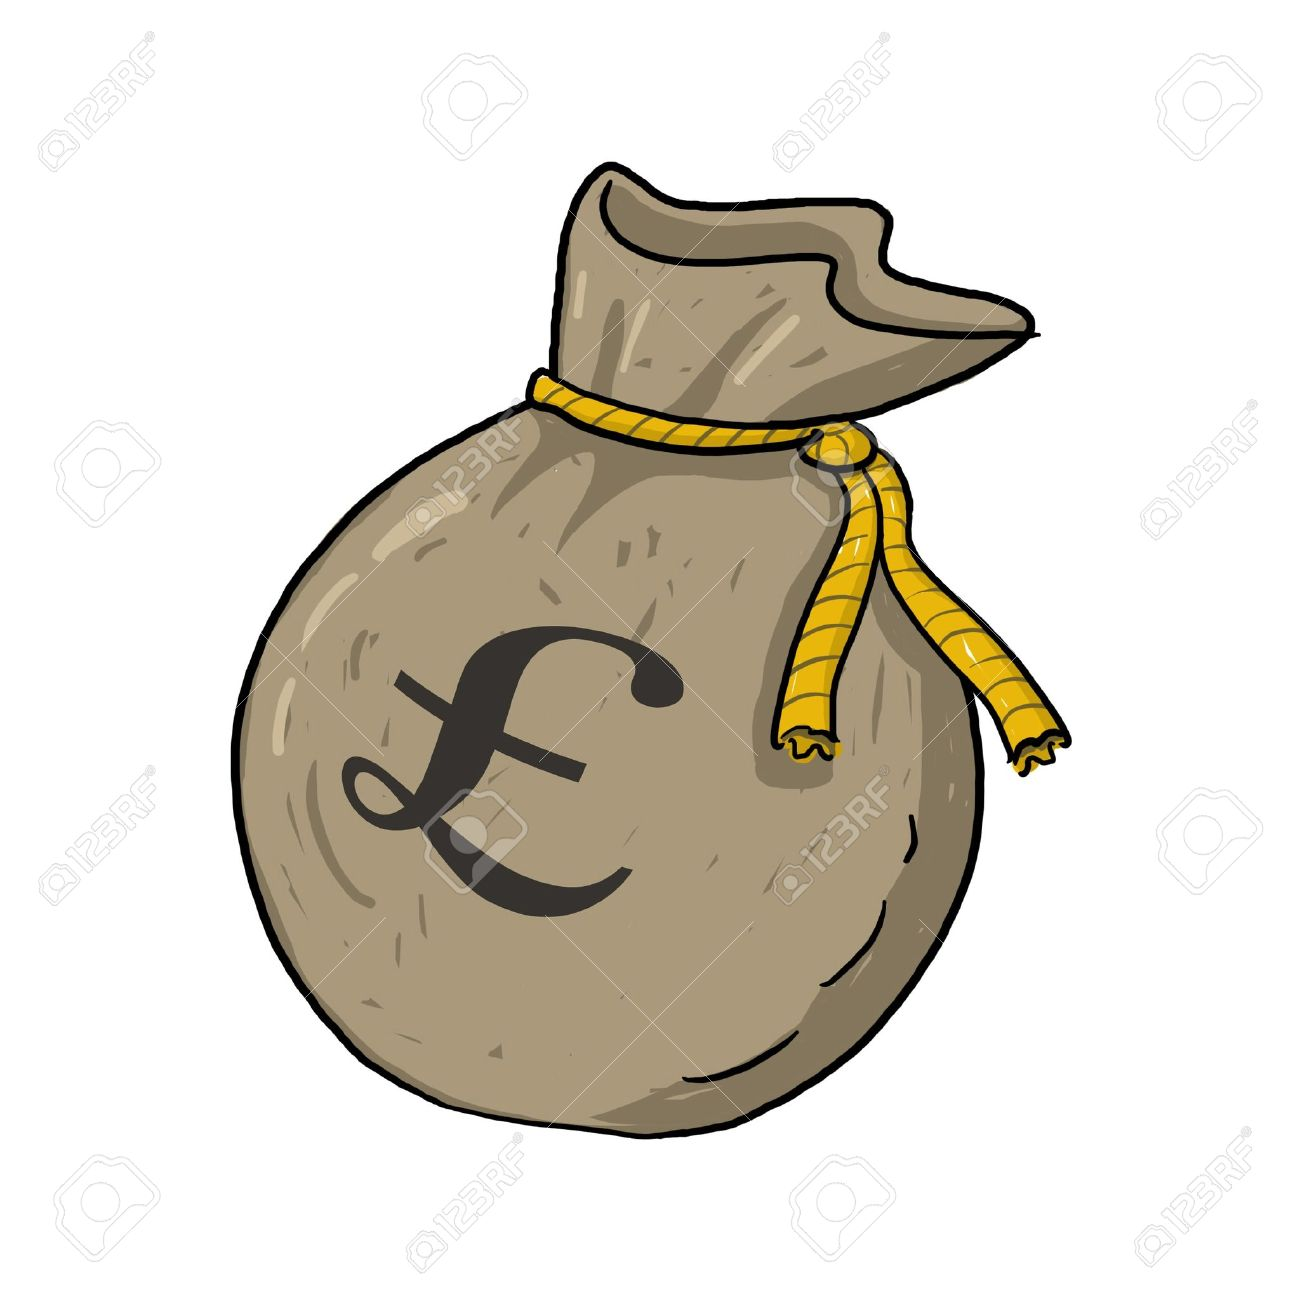 Sack of money with pound sterling sign illustration; Green sack of money drawing; Isolated money bag with pound sterling sign on it; sack of money with � sign cartoon style illustration Stock Illustration - 9640751